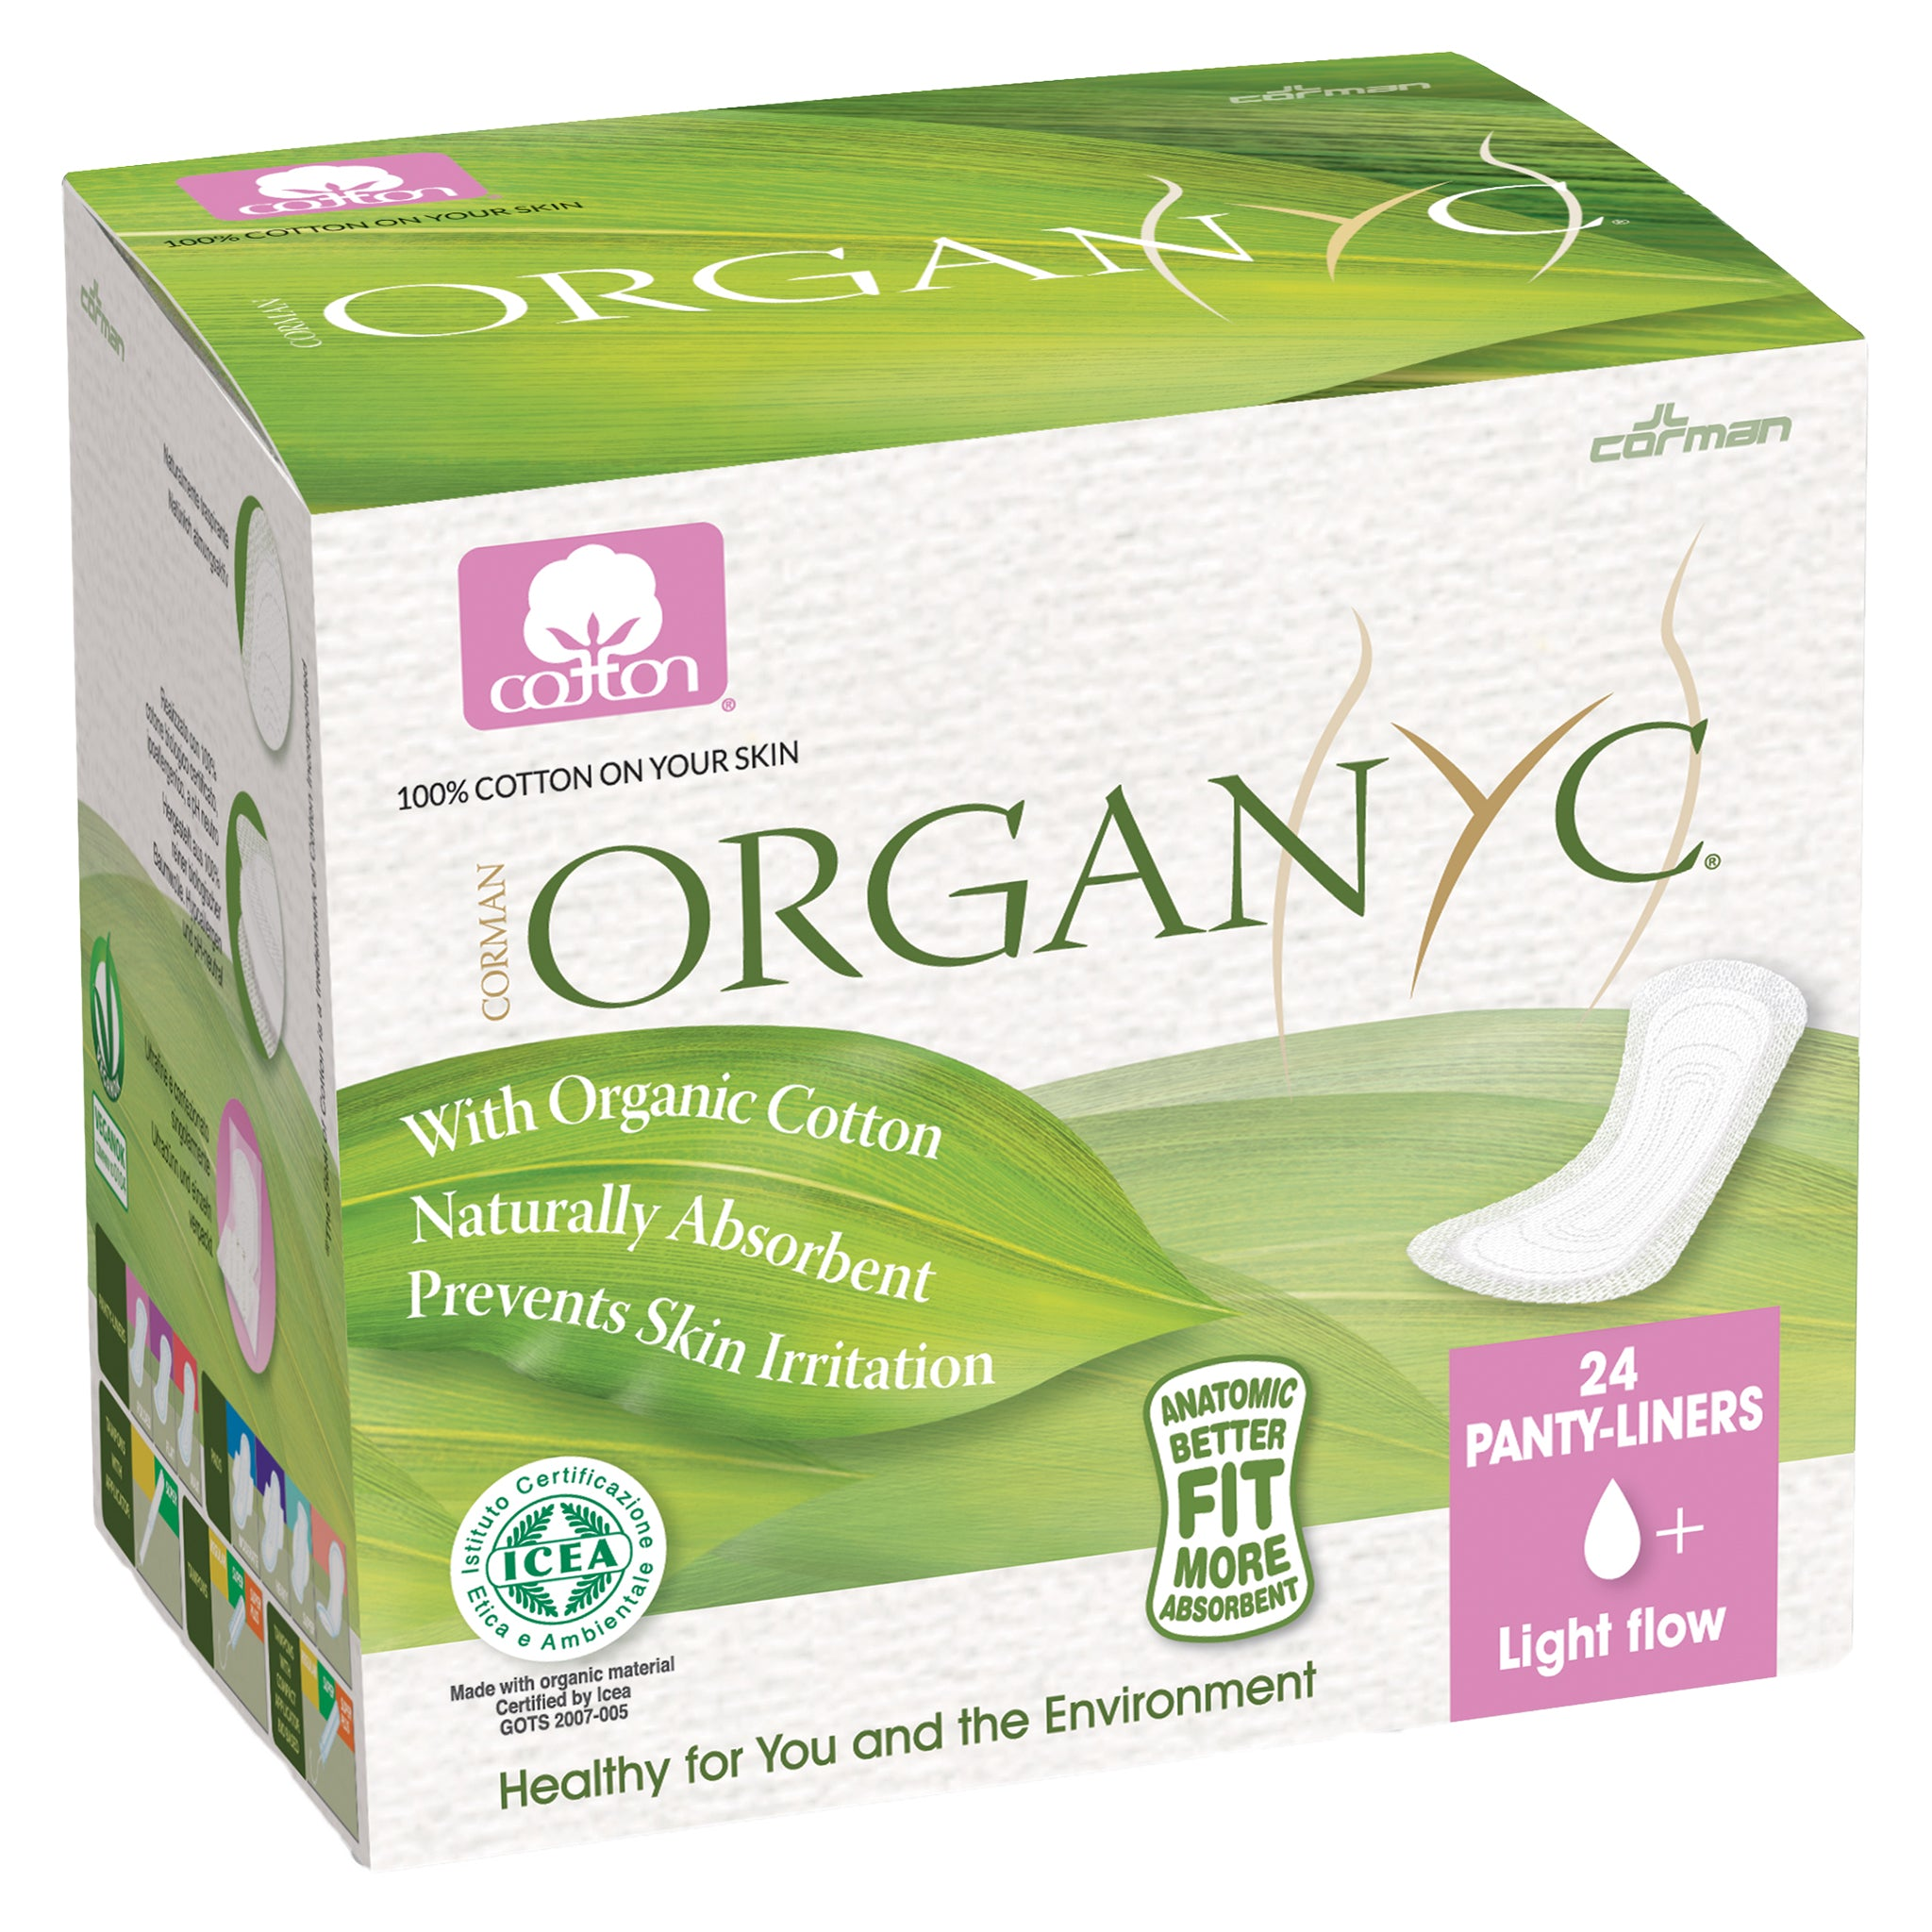 Organ(y)c Organic Cotton Panty Liners Folded Light Flow